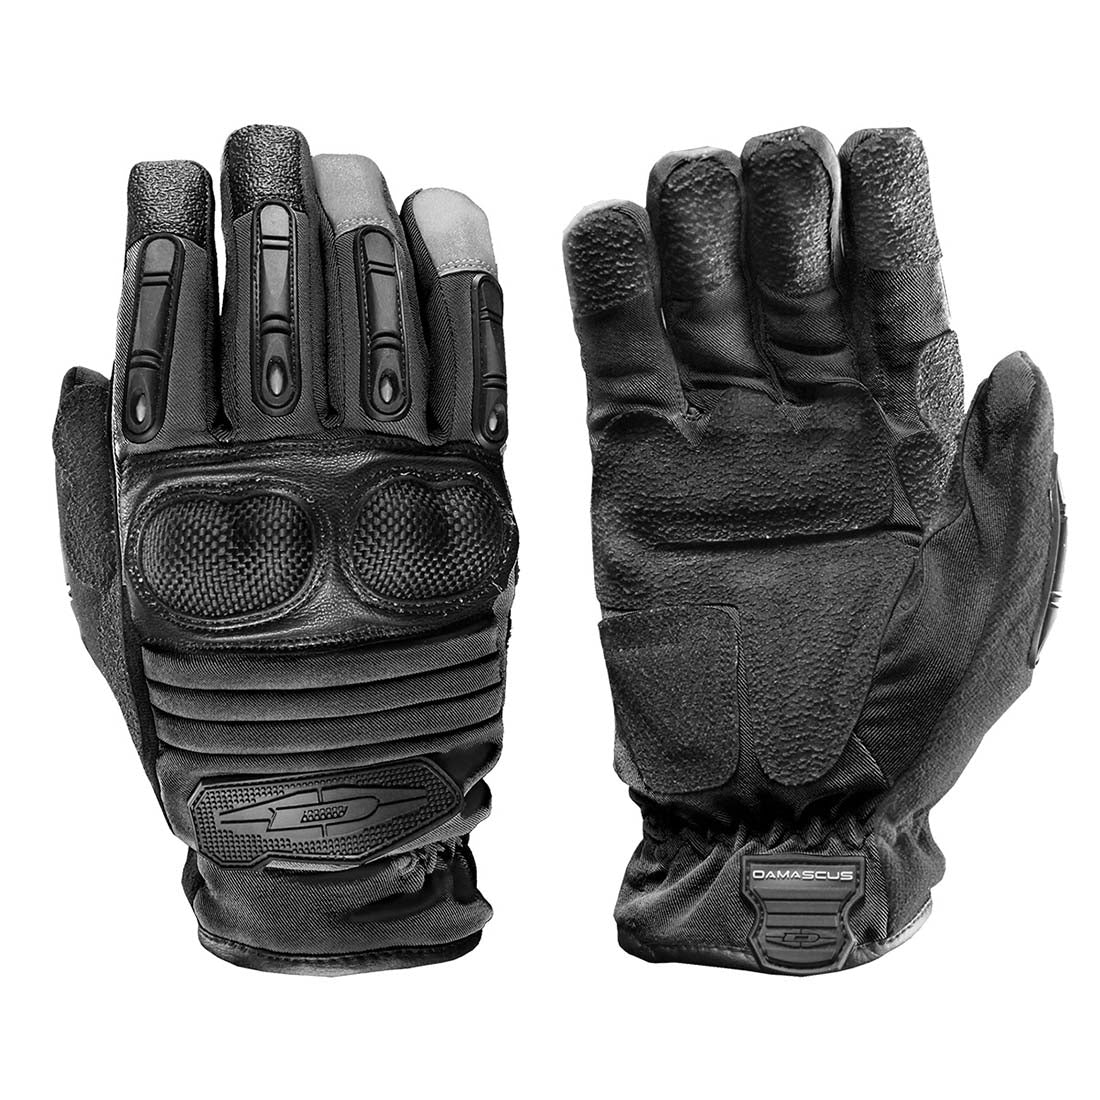 Damascus Gear Extrication and Rescue Gloves w/Hard Knuckles